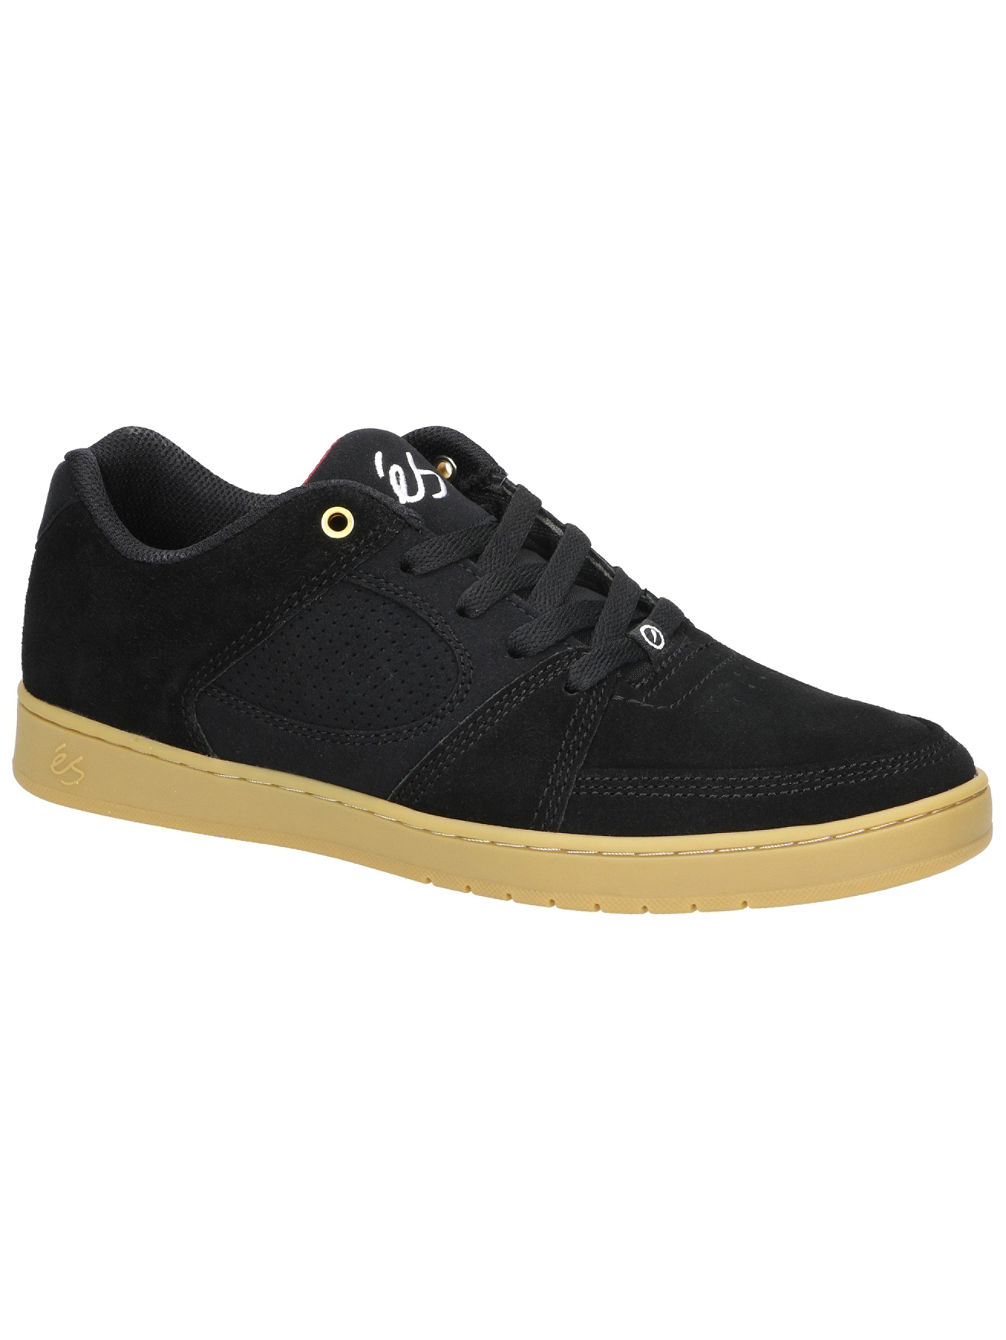 Accel Slim Skate Shoes